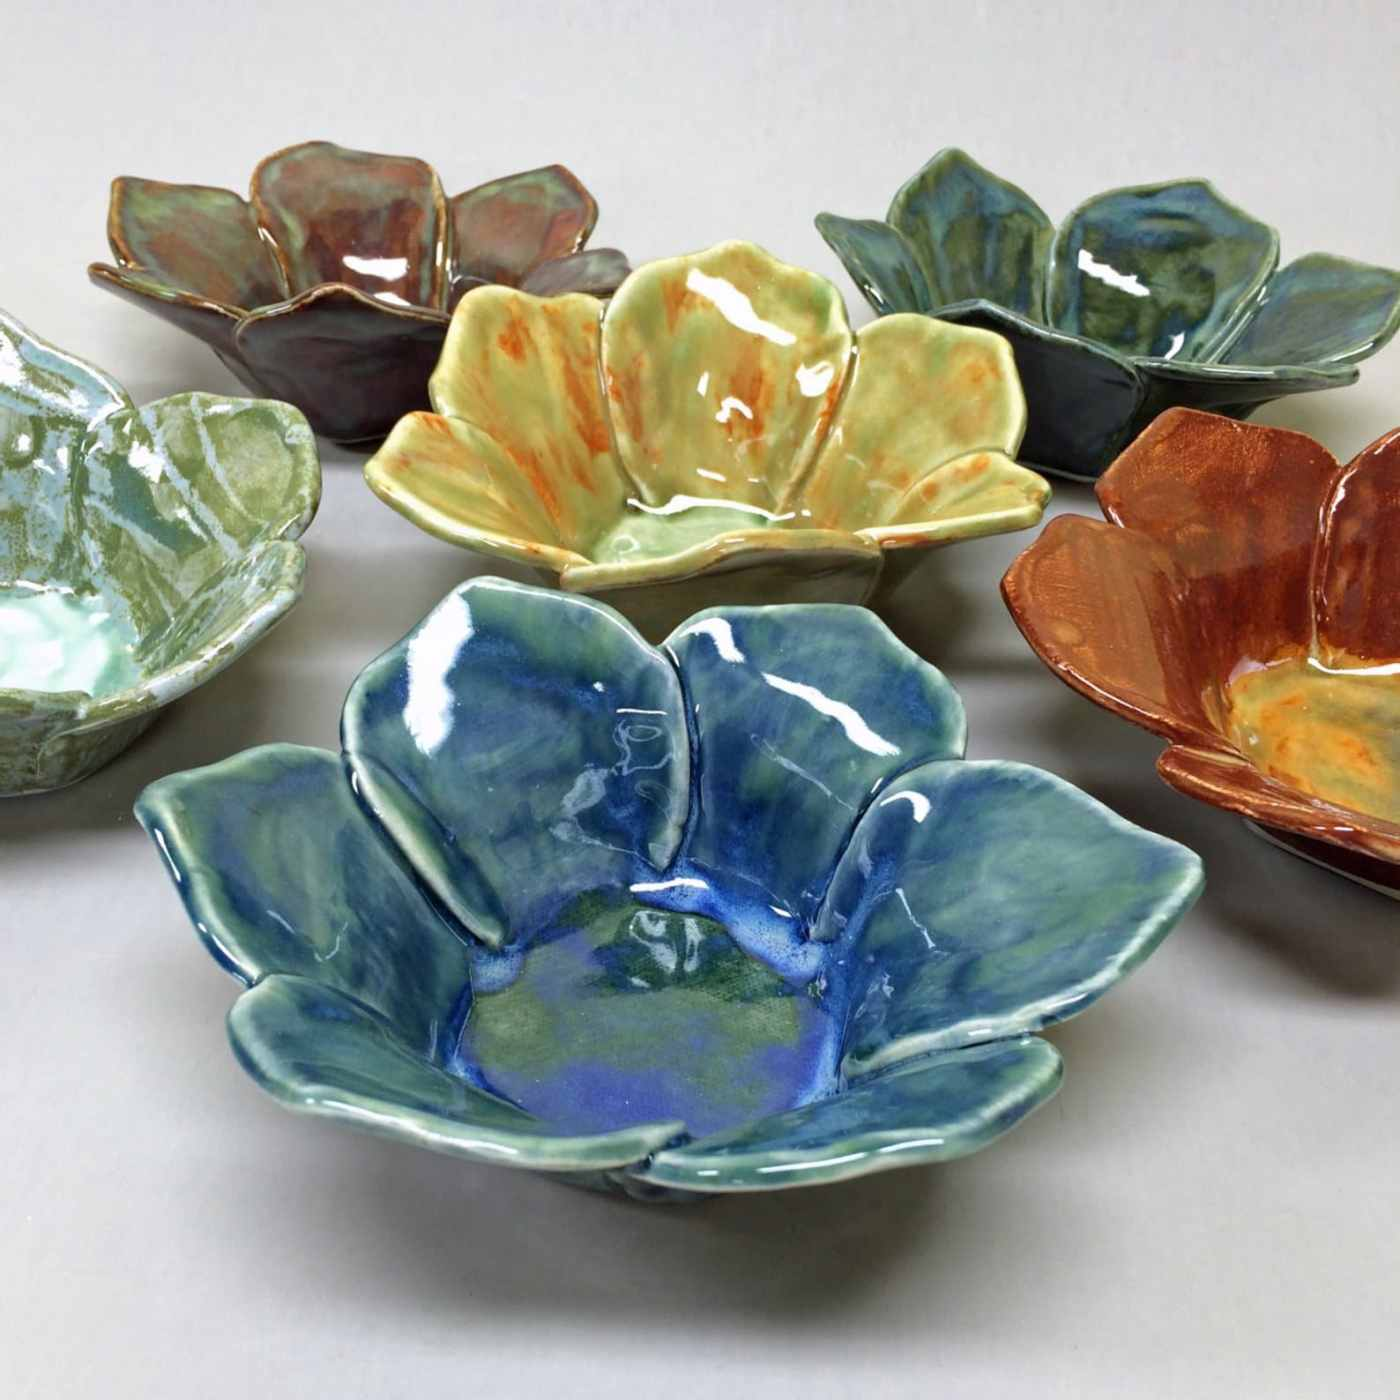 Birmingham, Etsy, LindseyKellyPottery, bowls, pottery, ceramics, ceramic bowls, flowers, Mother's Day, gifts